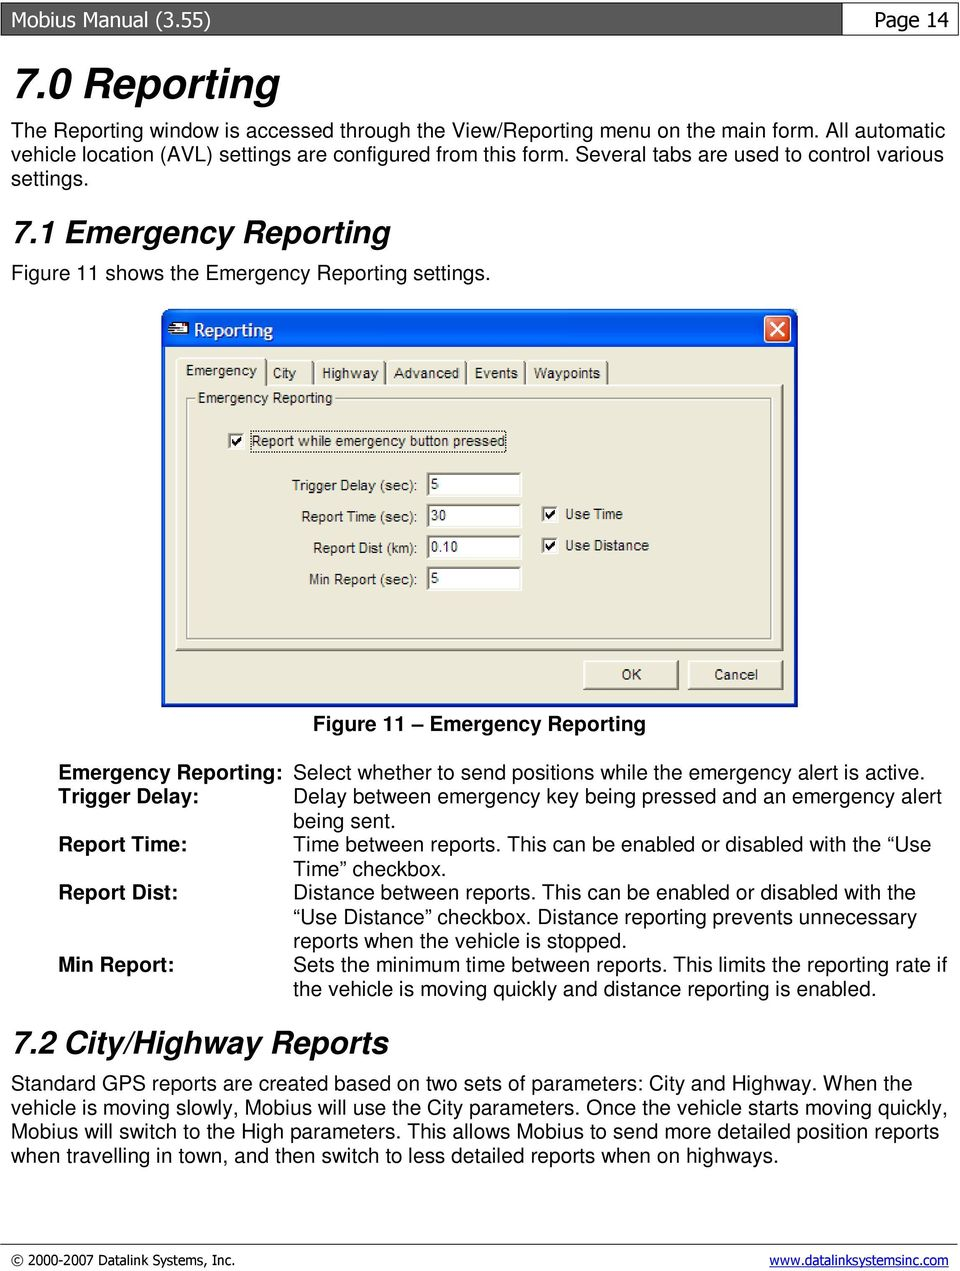 1 Emergency Reporting Figure 11 shows the Emergency Reporting settings. Figure 11 Emergency Reporting Emergency Reporting: Select whether to send positions while the emergency alert is active.